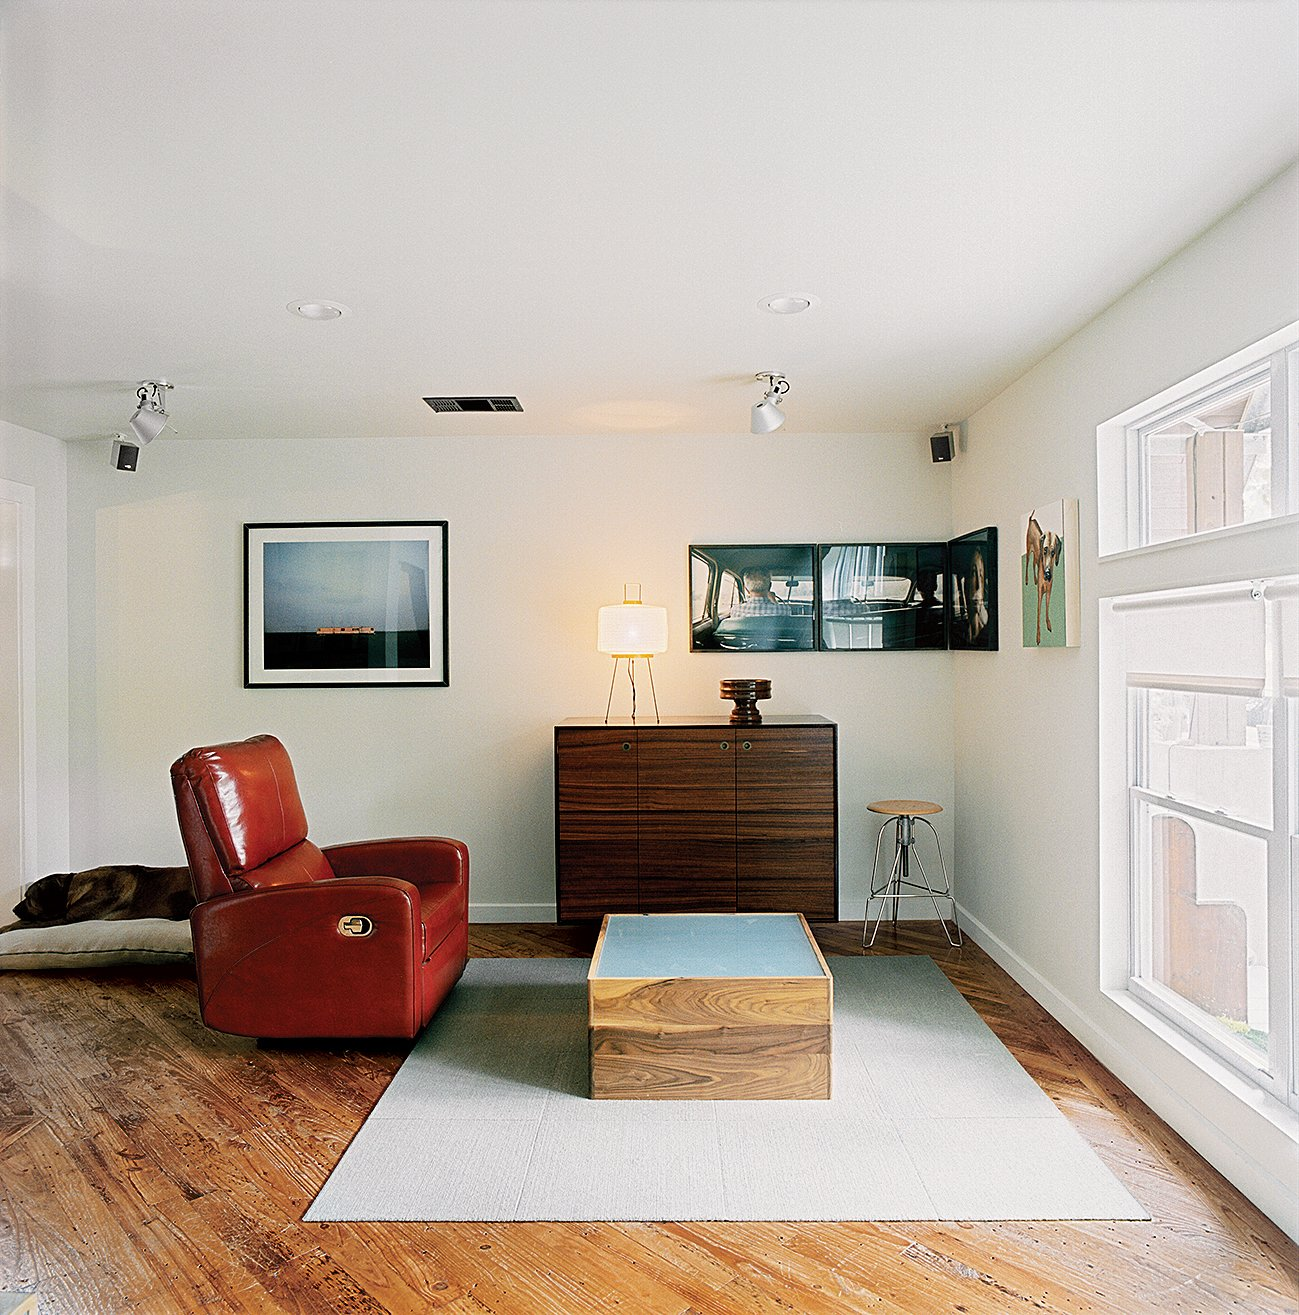 The media cabinet and lightbox coffee table exemplify Dollahite's furniture-making talents. After finishing the house he founded a studio, Rural Theory, to apply his talents elsewhere. Salvage Love - Photo 6 of 10